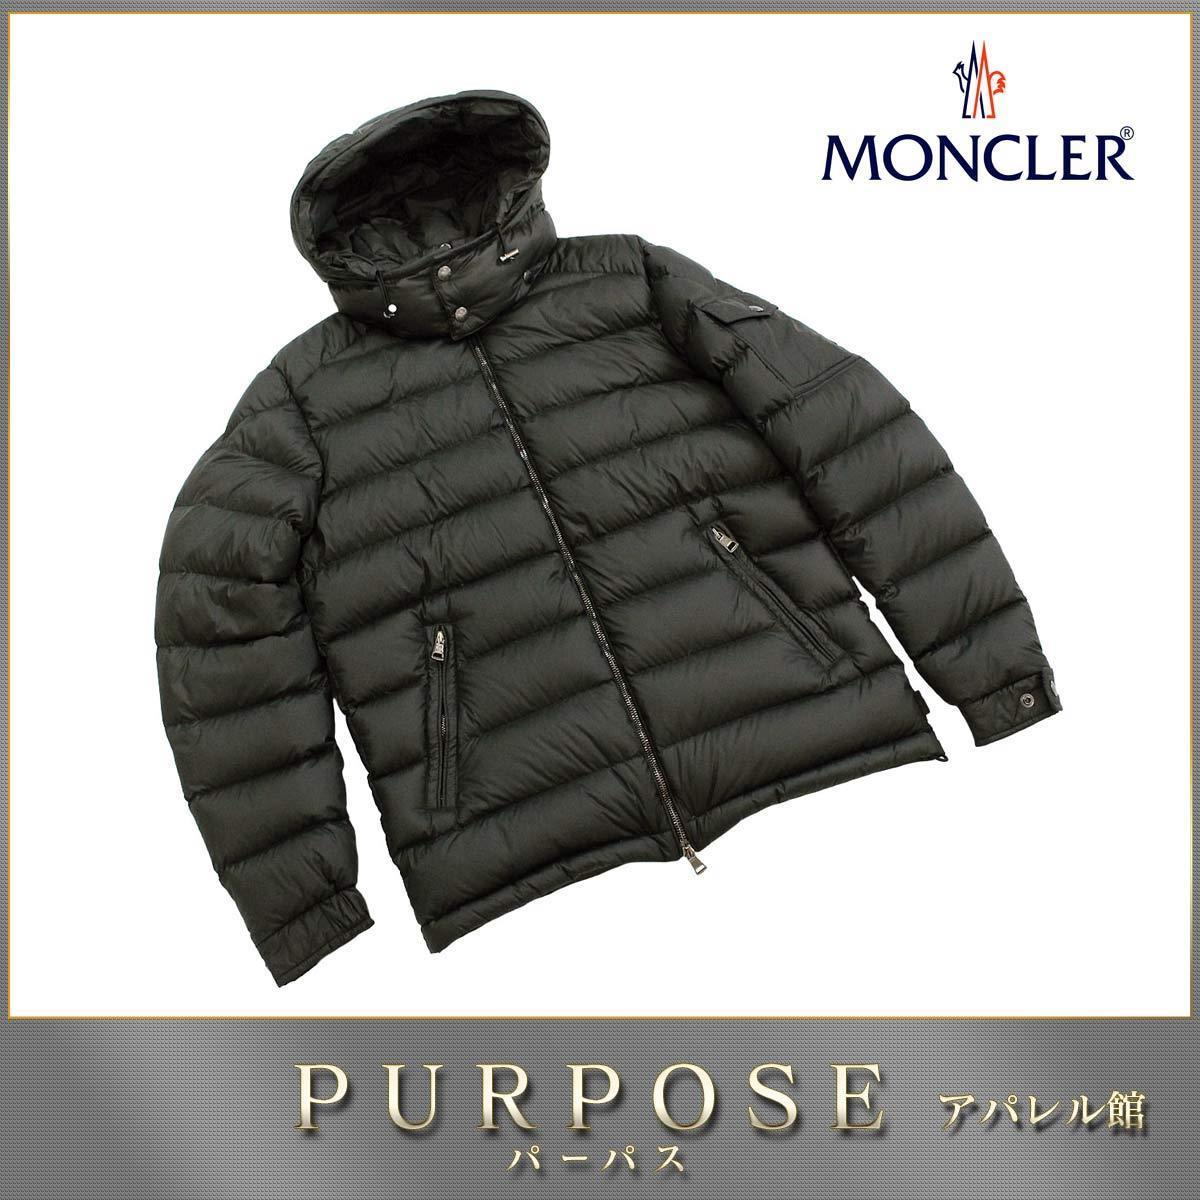 e20ce398b05d ... low cost size 1 mens used apparel with the monk rail moncler down jacket  monge navel